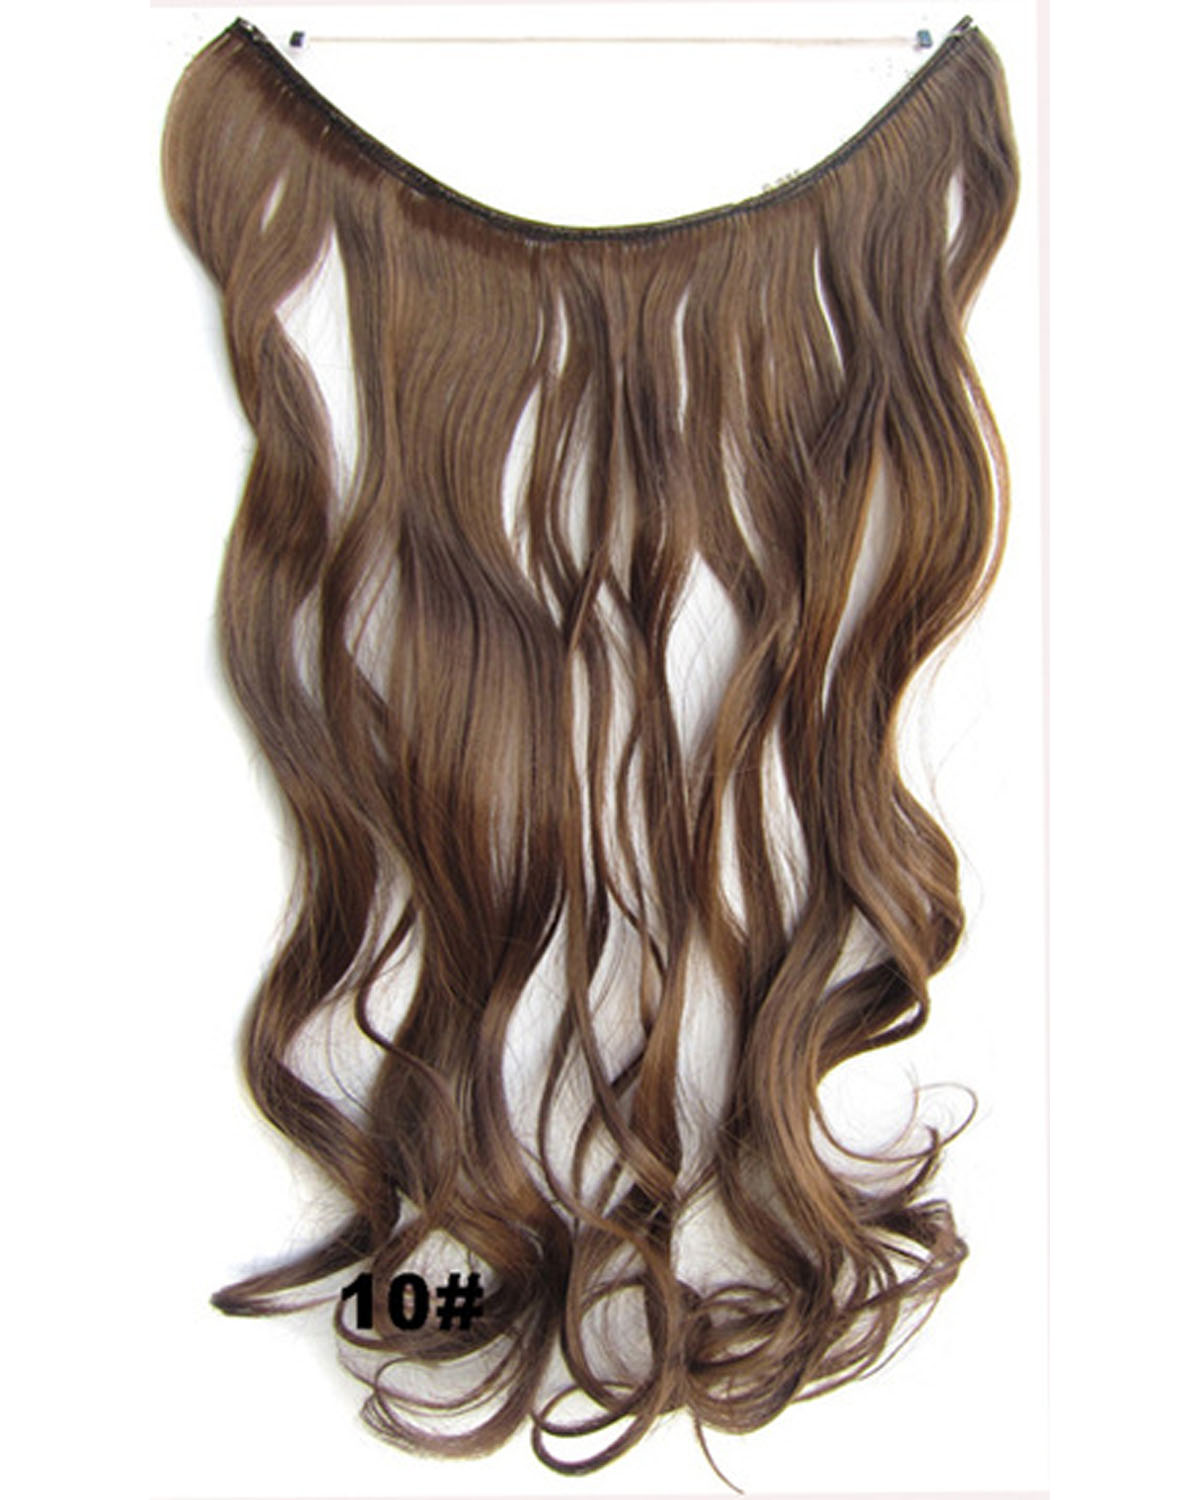 22 Inch Exquisite Curly and Long One Piece Miracle Wire Flip in Synthetic Hair Extension10#